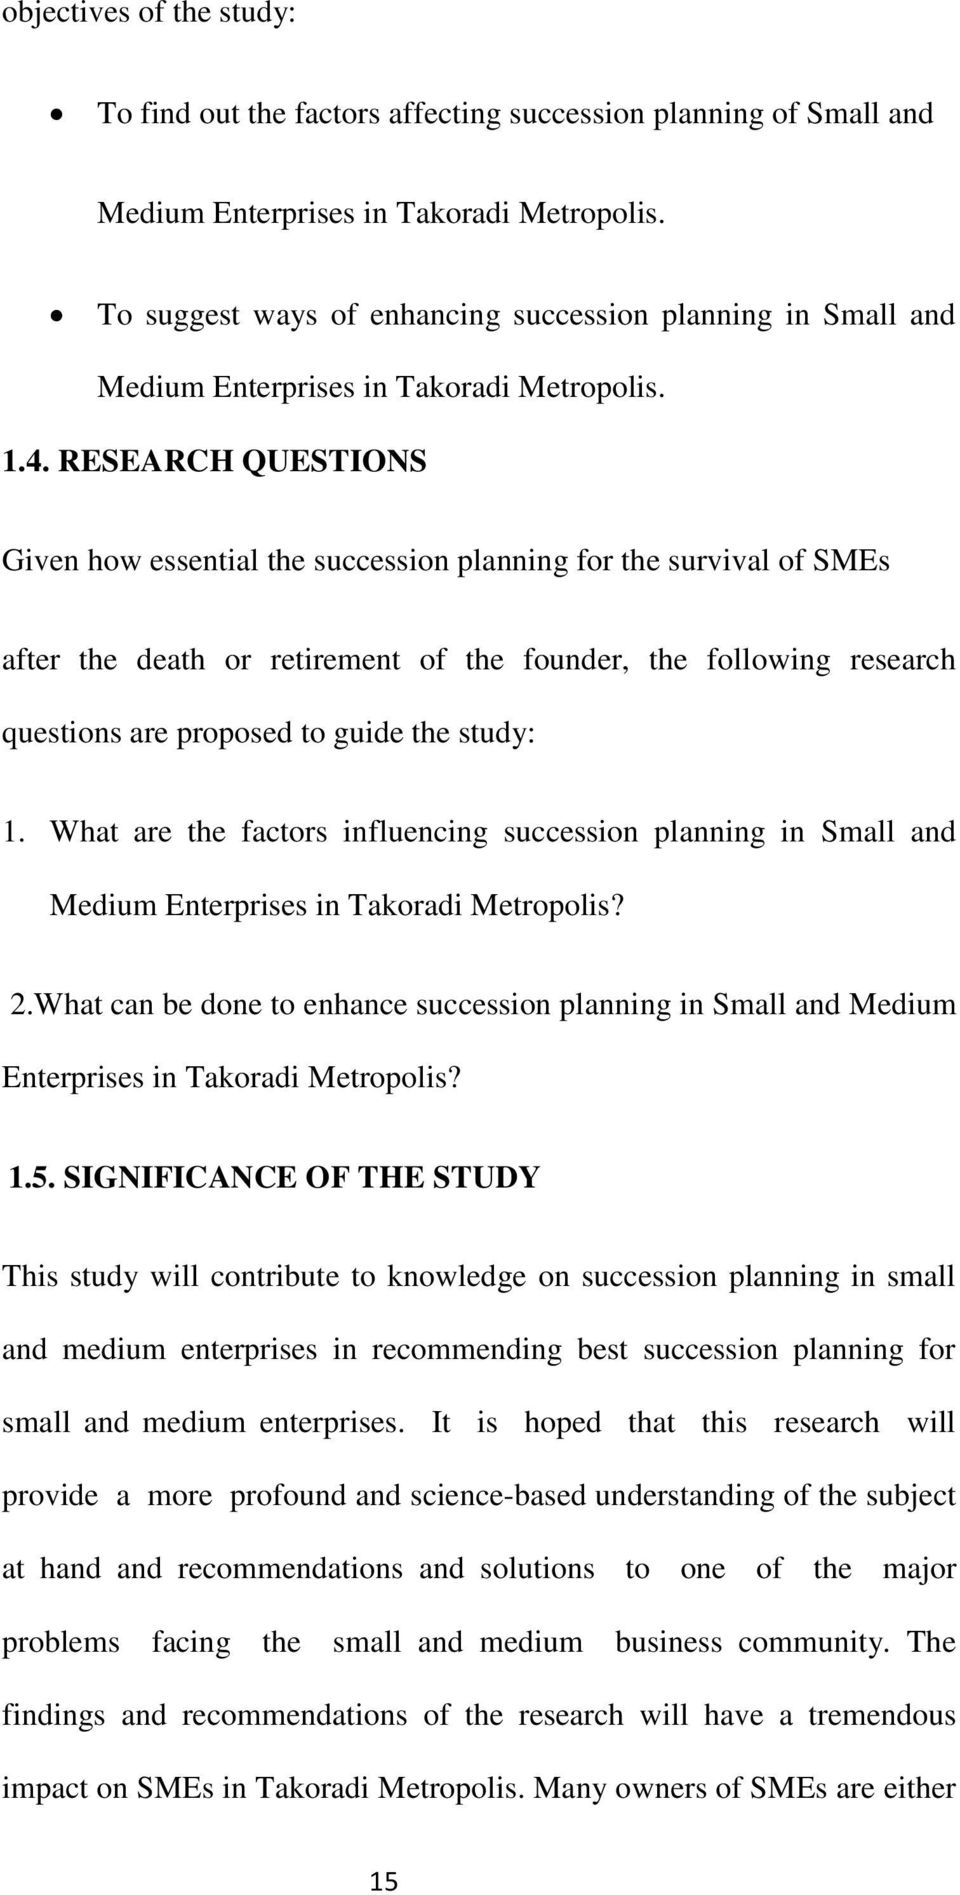 RESEARCH QUESTIONS Given how essential the succession planning for the survival of SMEs after the death or retirement of the founder, the following research questions are proposed to guide the study: